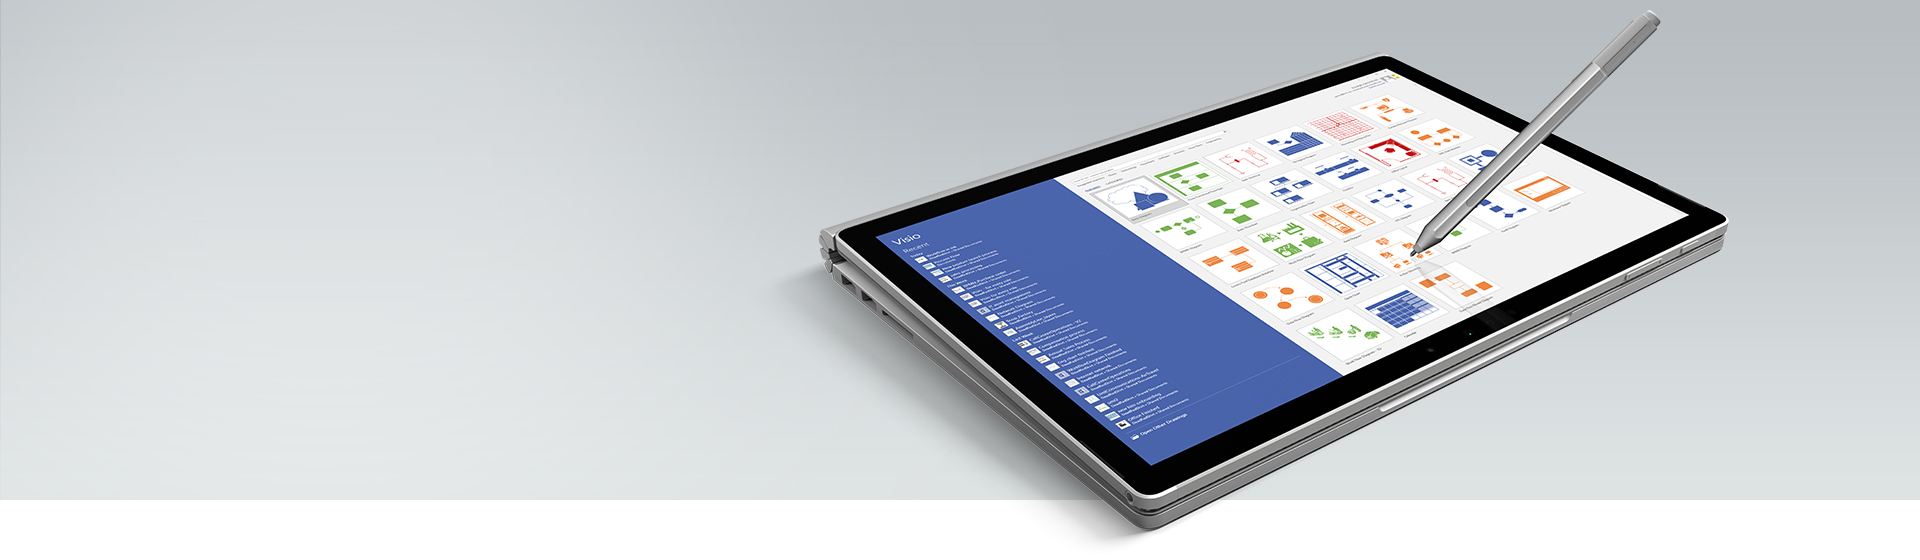 A Microsoft Surface tablet displaying the available templates and recent file list in Visio